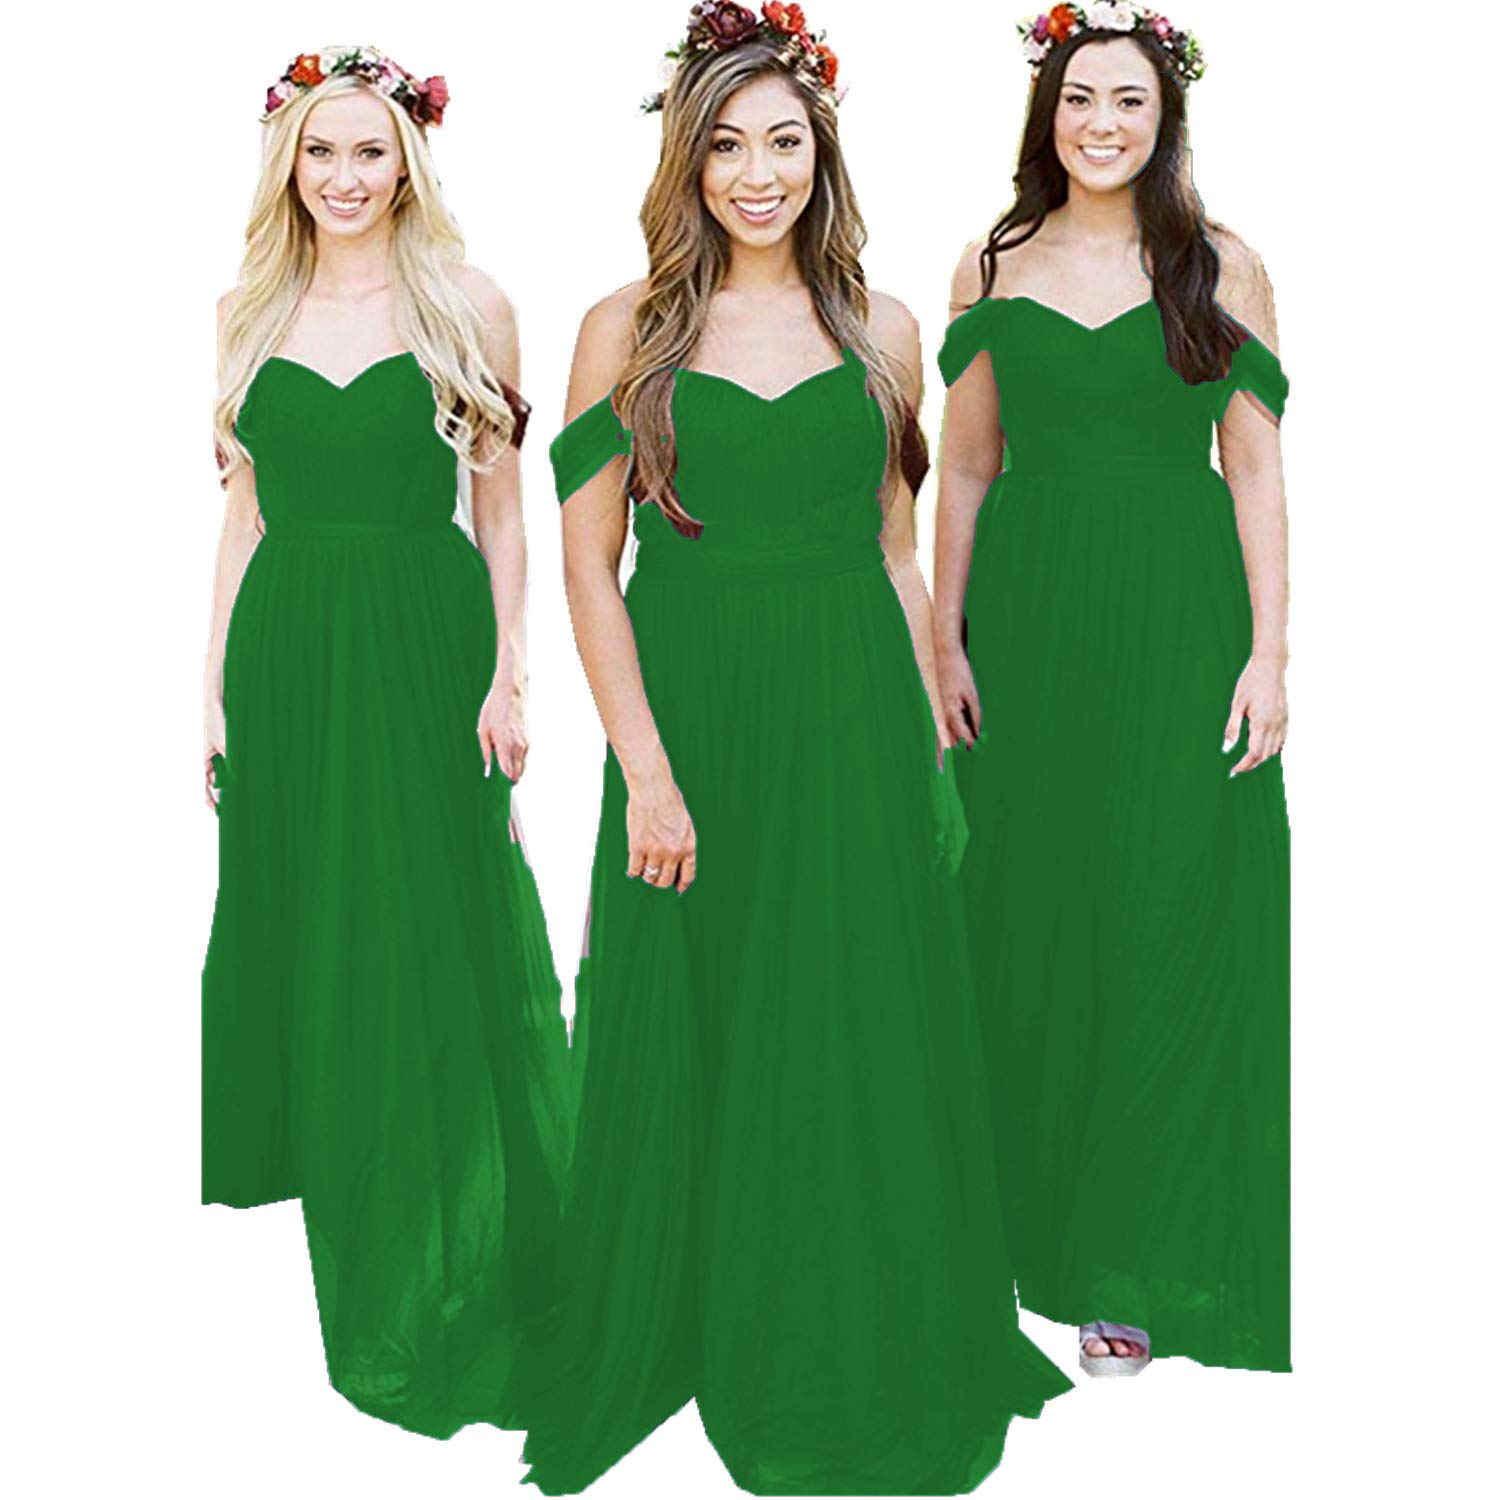 Green Ruiyuhong Women's Off The Shoulder Bridesmaid Dresses Long Tulle Wedding Party Gown